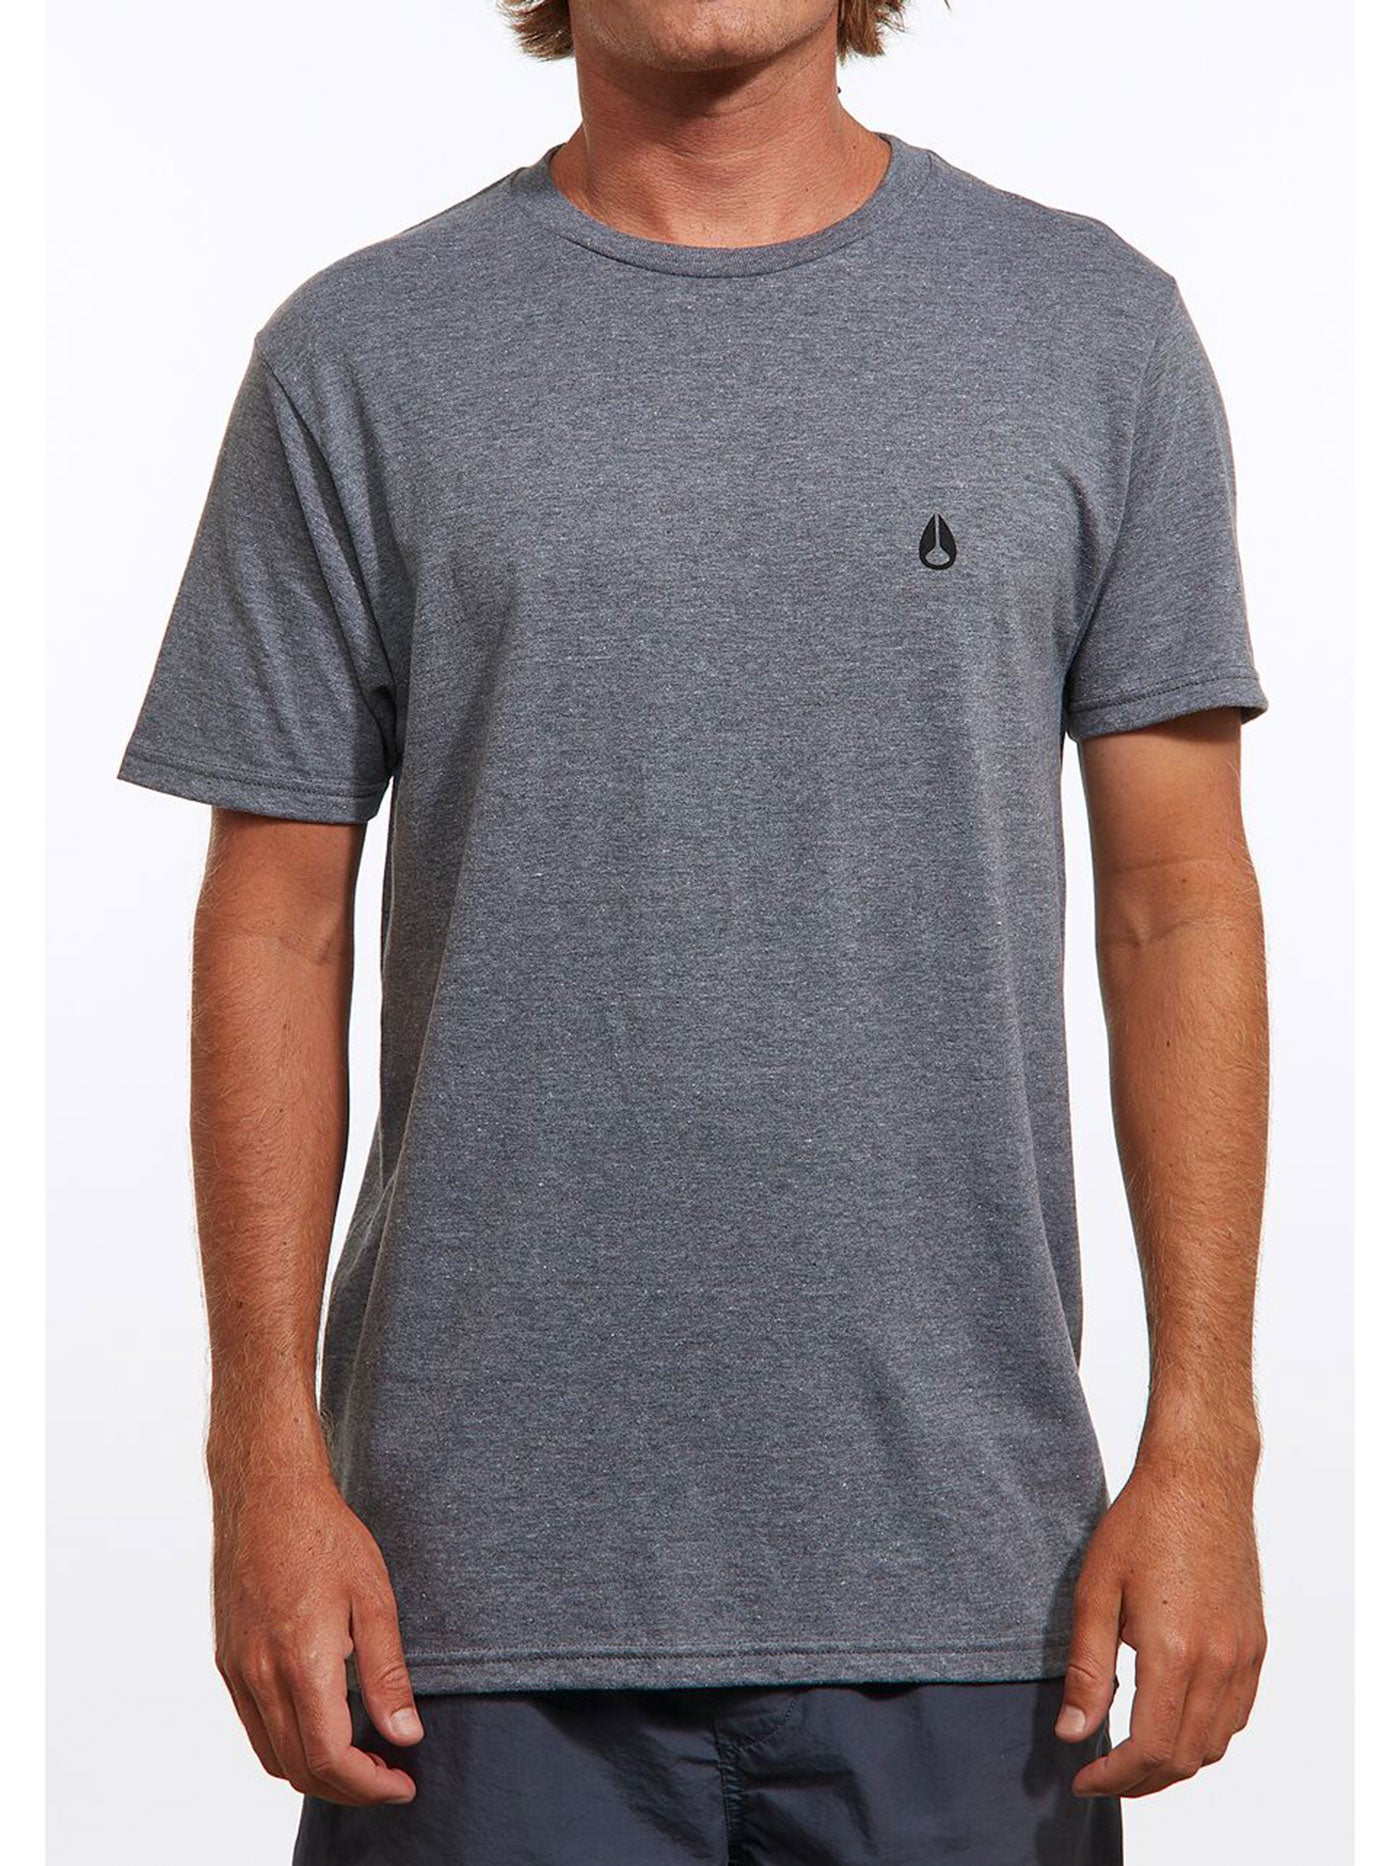 DARK HEATHER GREY (1447)